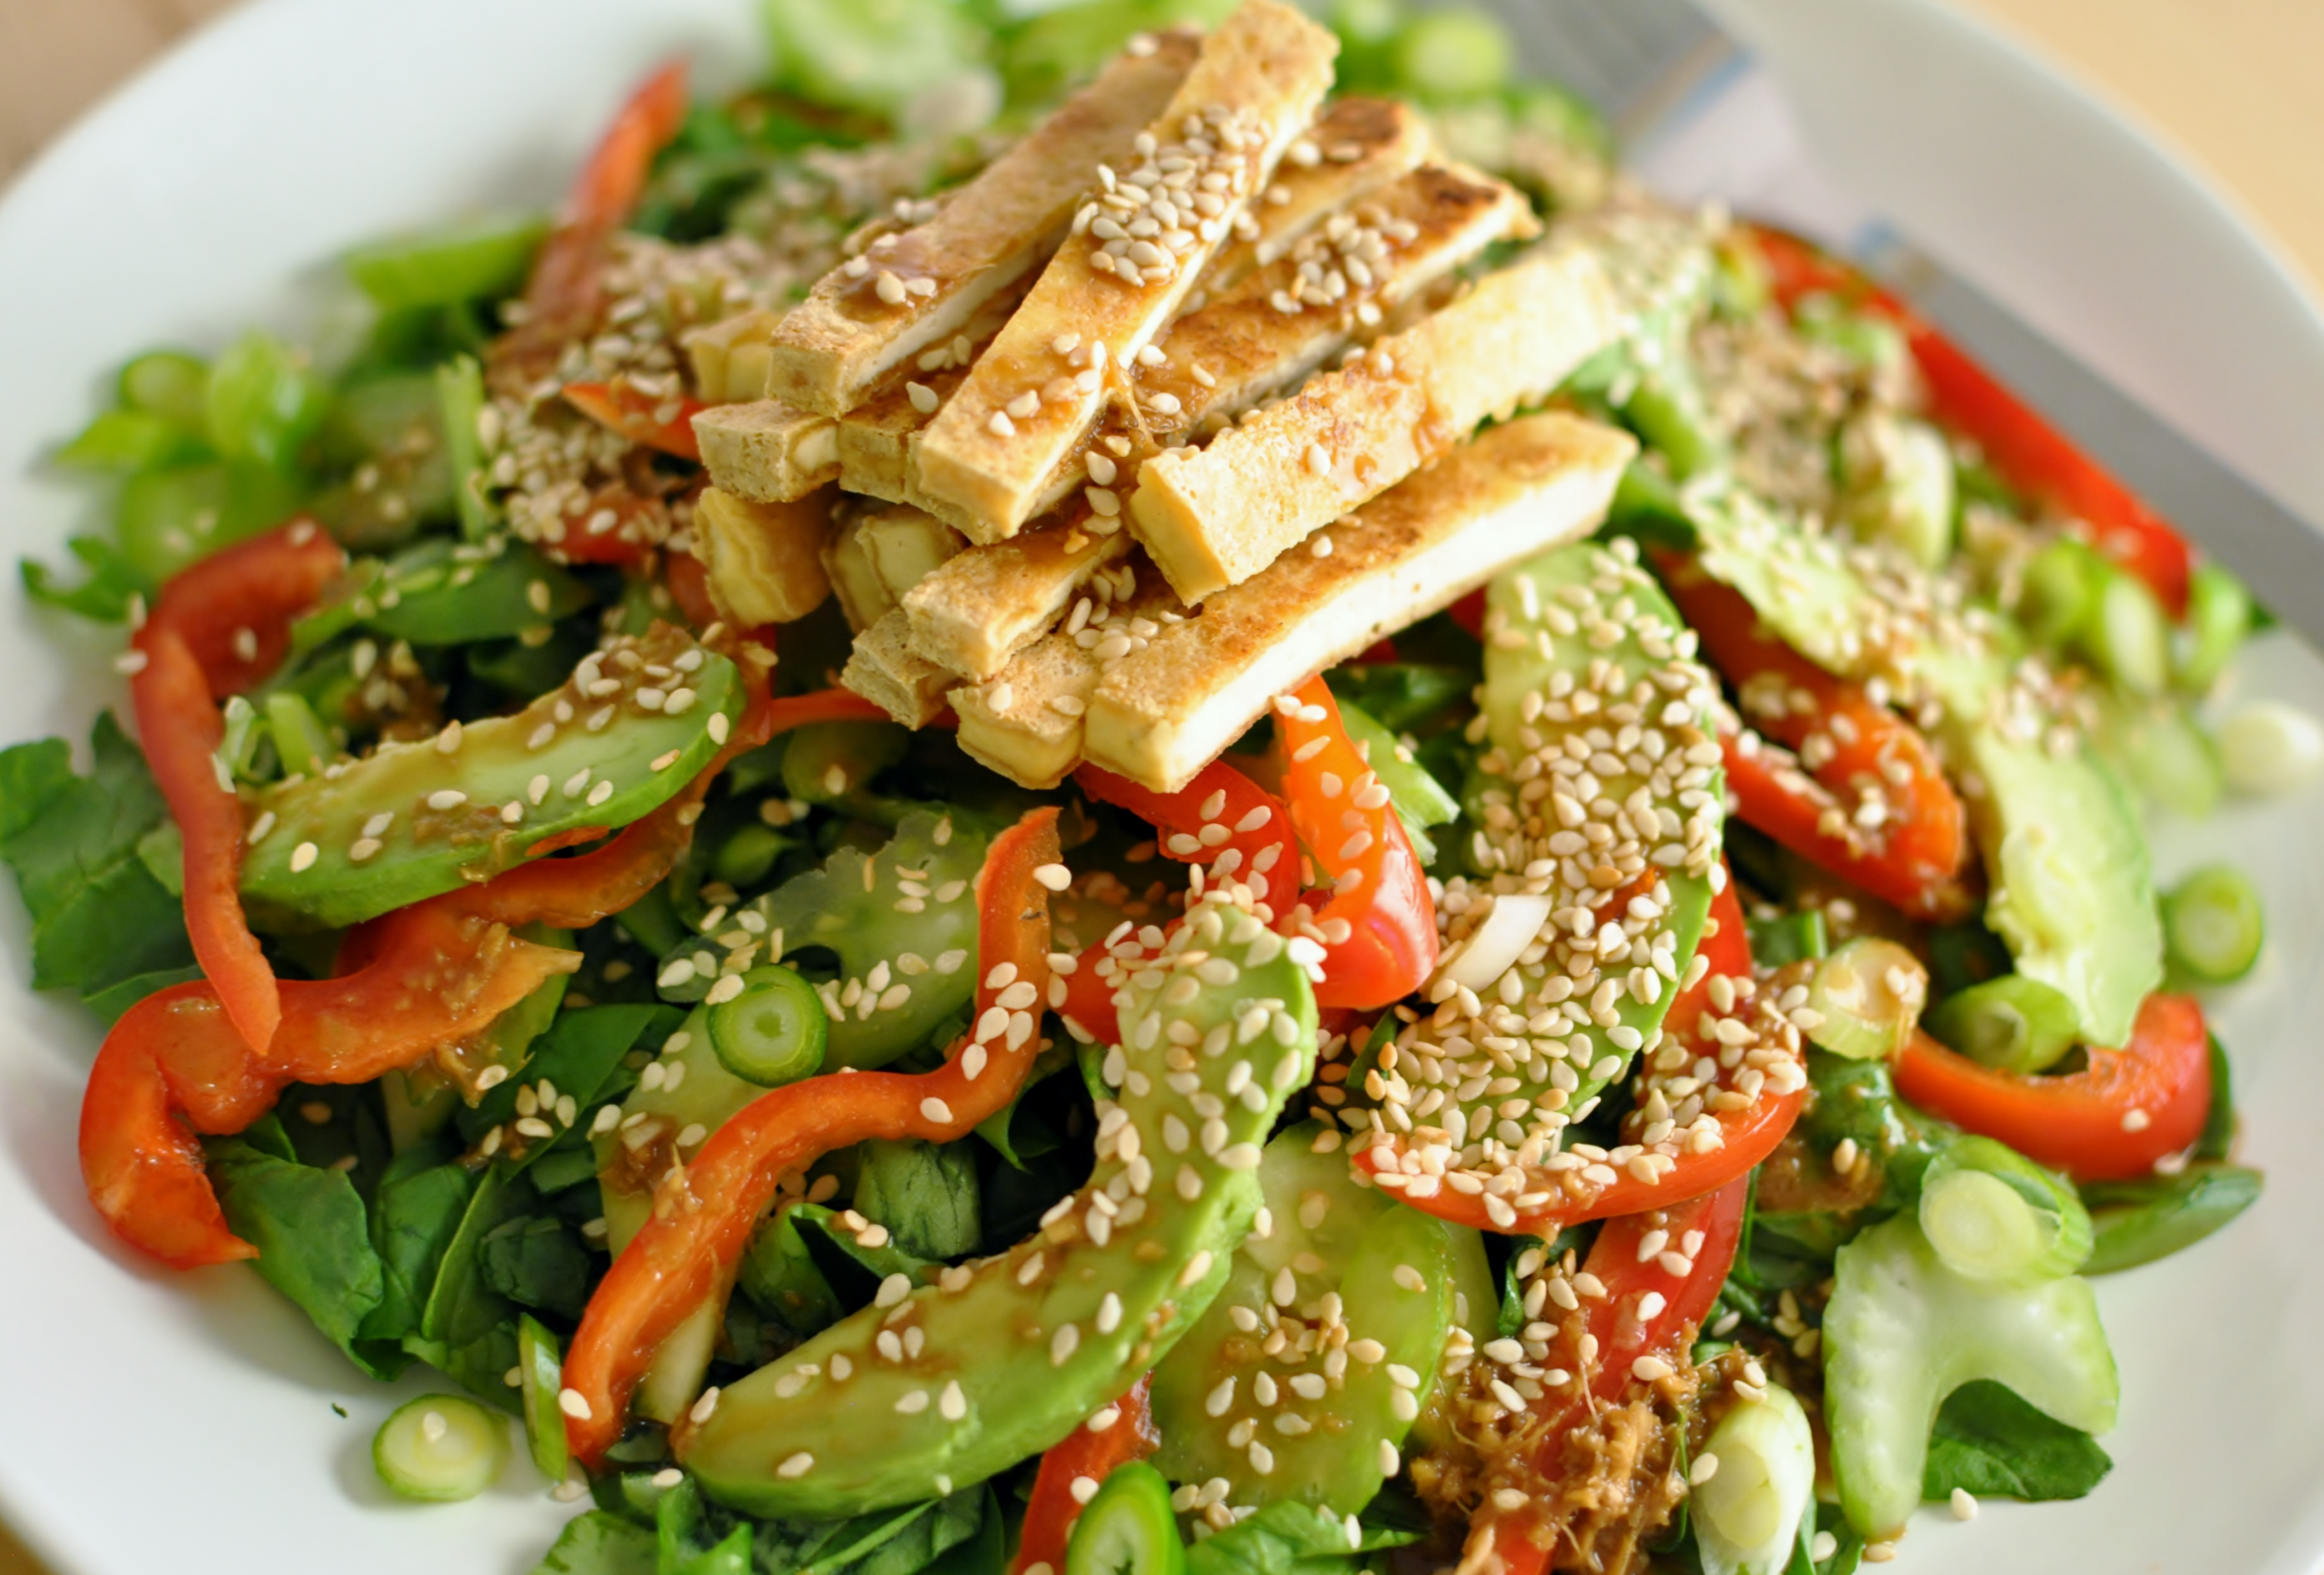 White Tofu, Sesame, And Vegetable Salad Recipe — Dishmaps